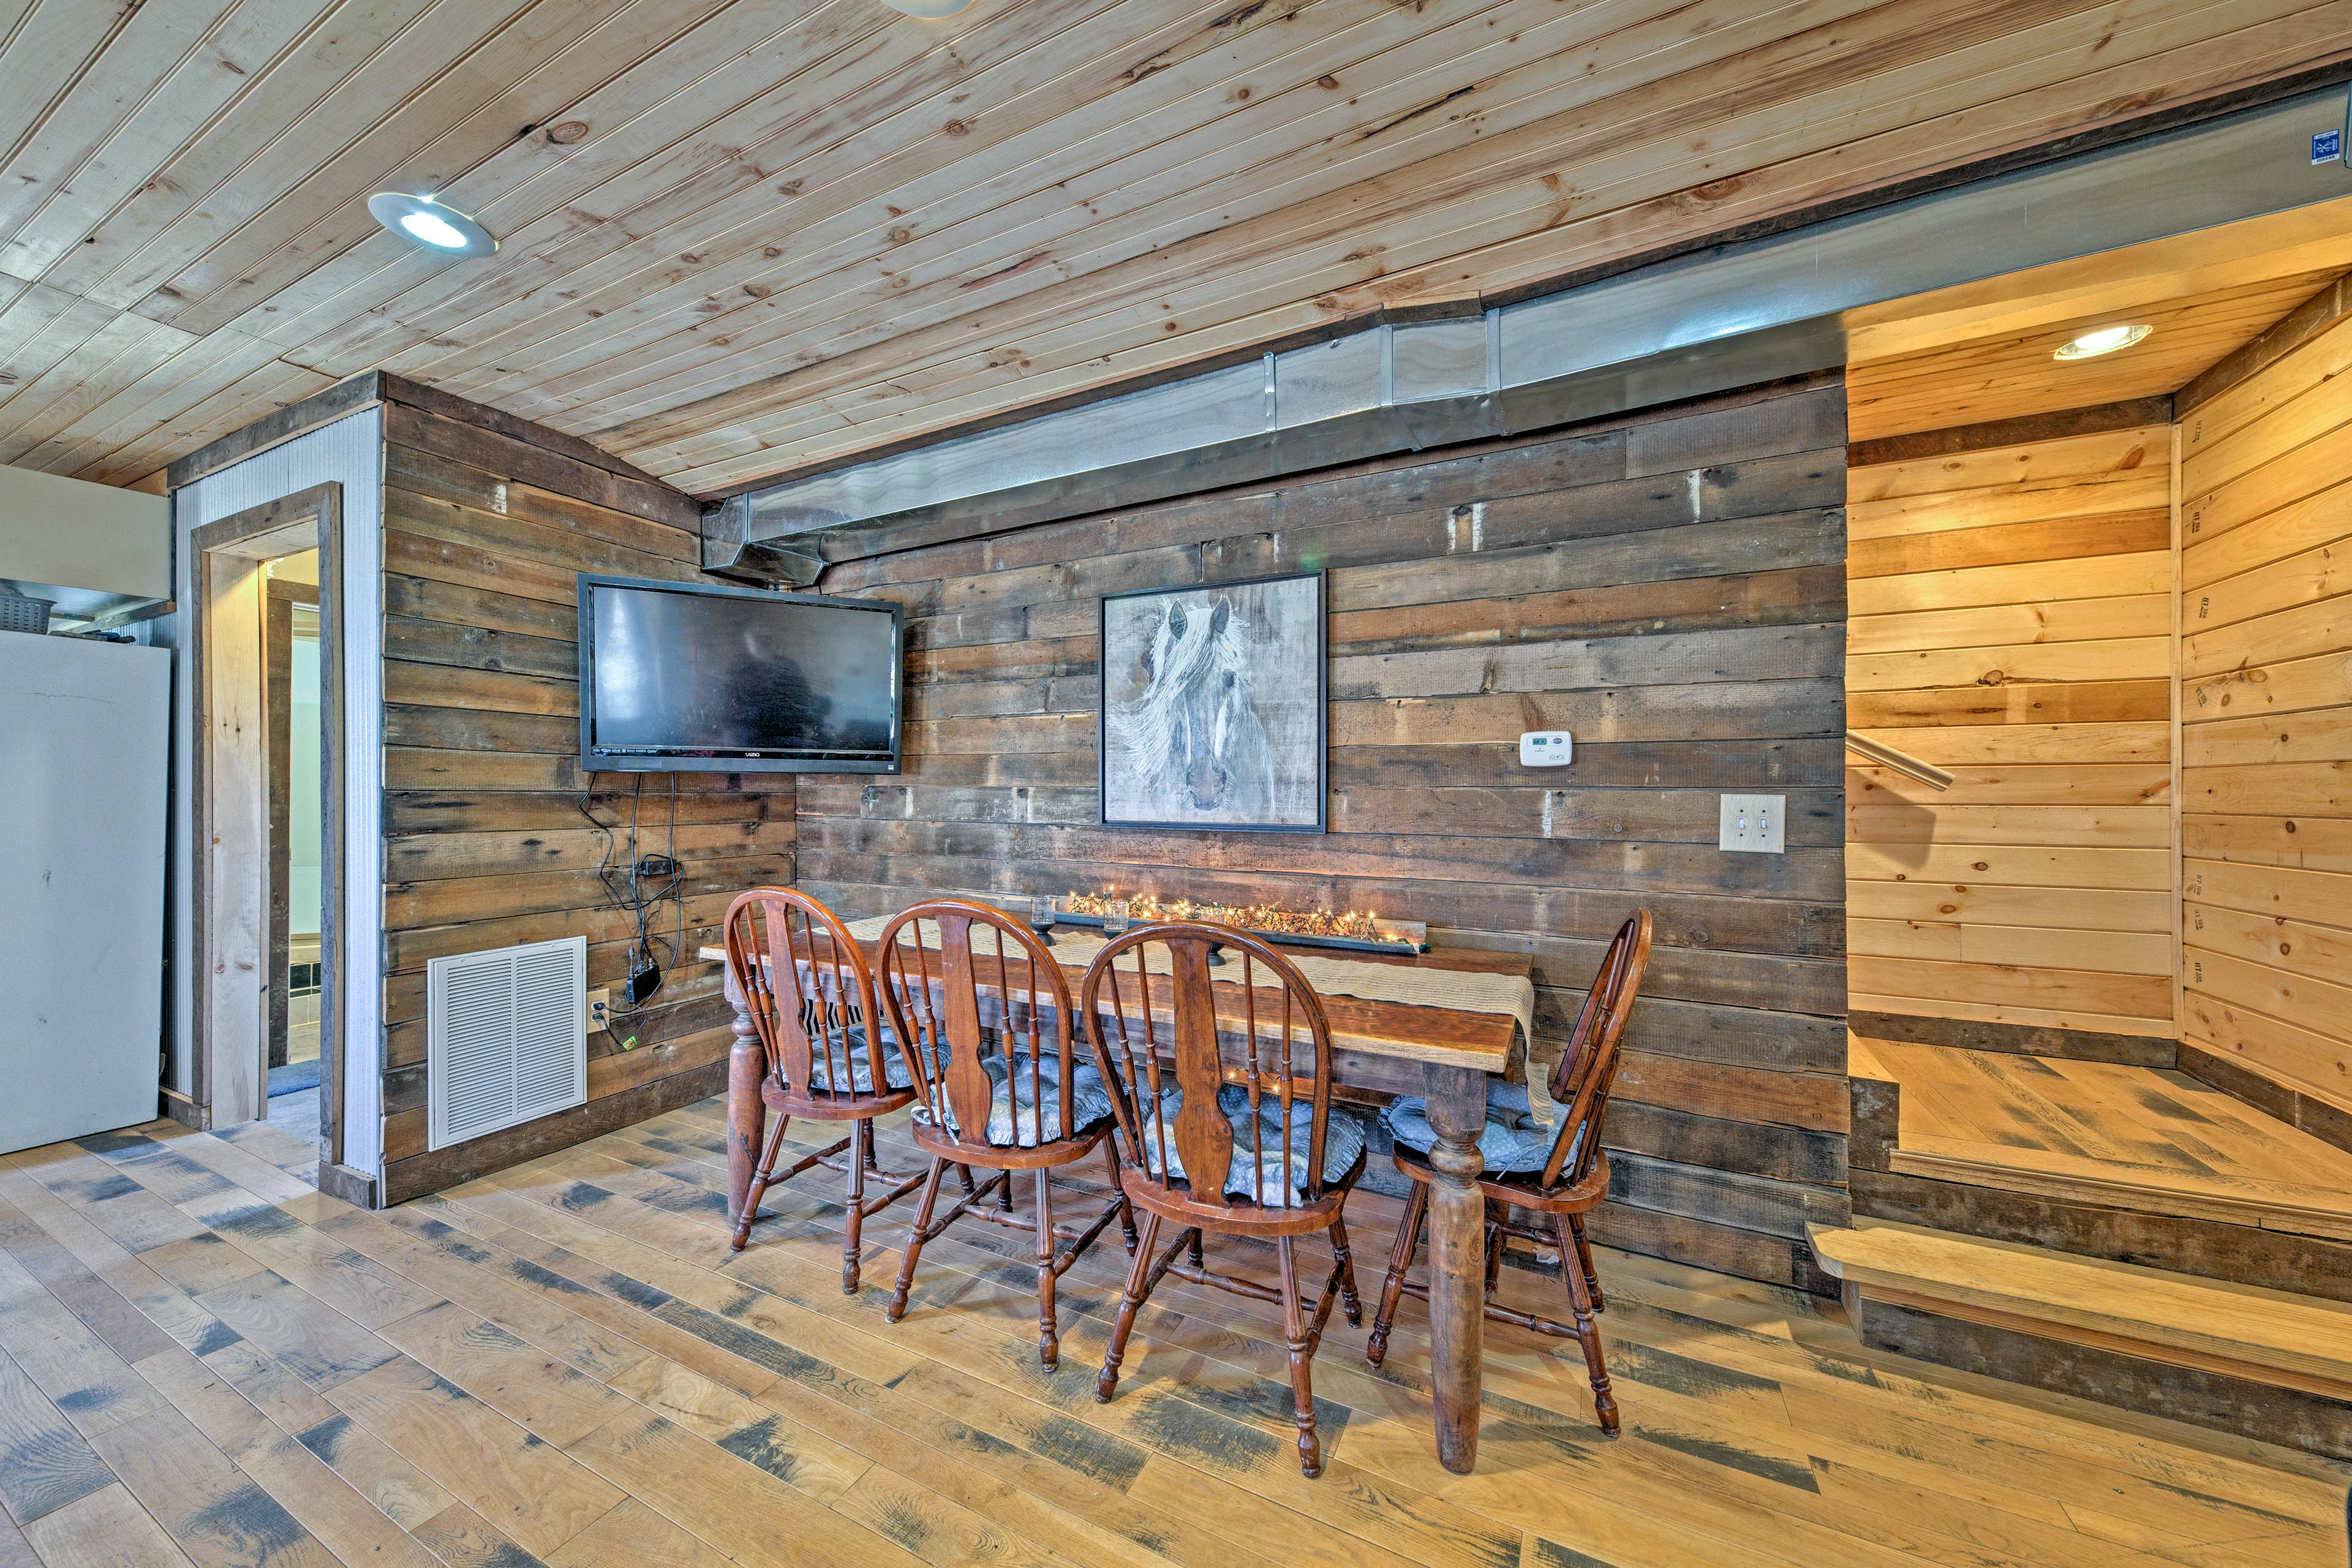 Enjoy watching TV while you dine at the long 8-person table.